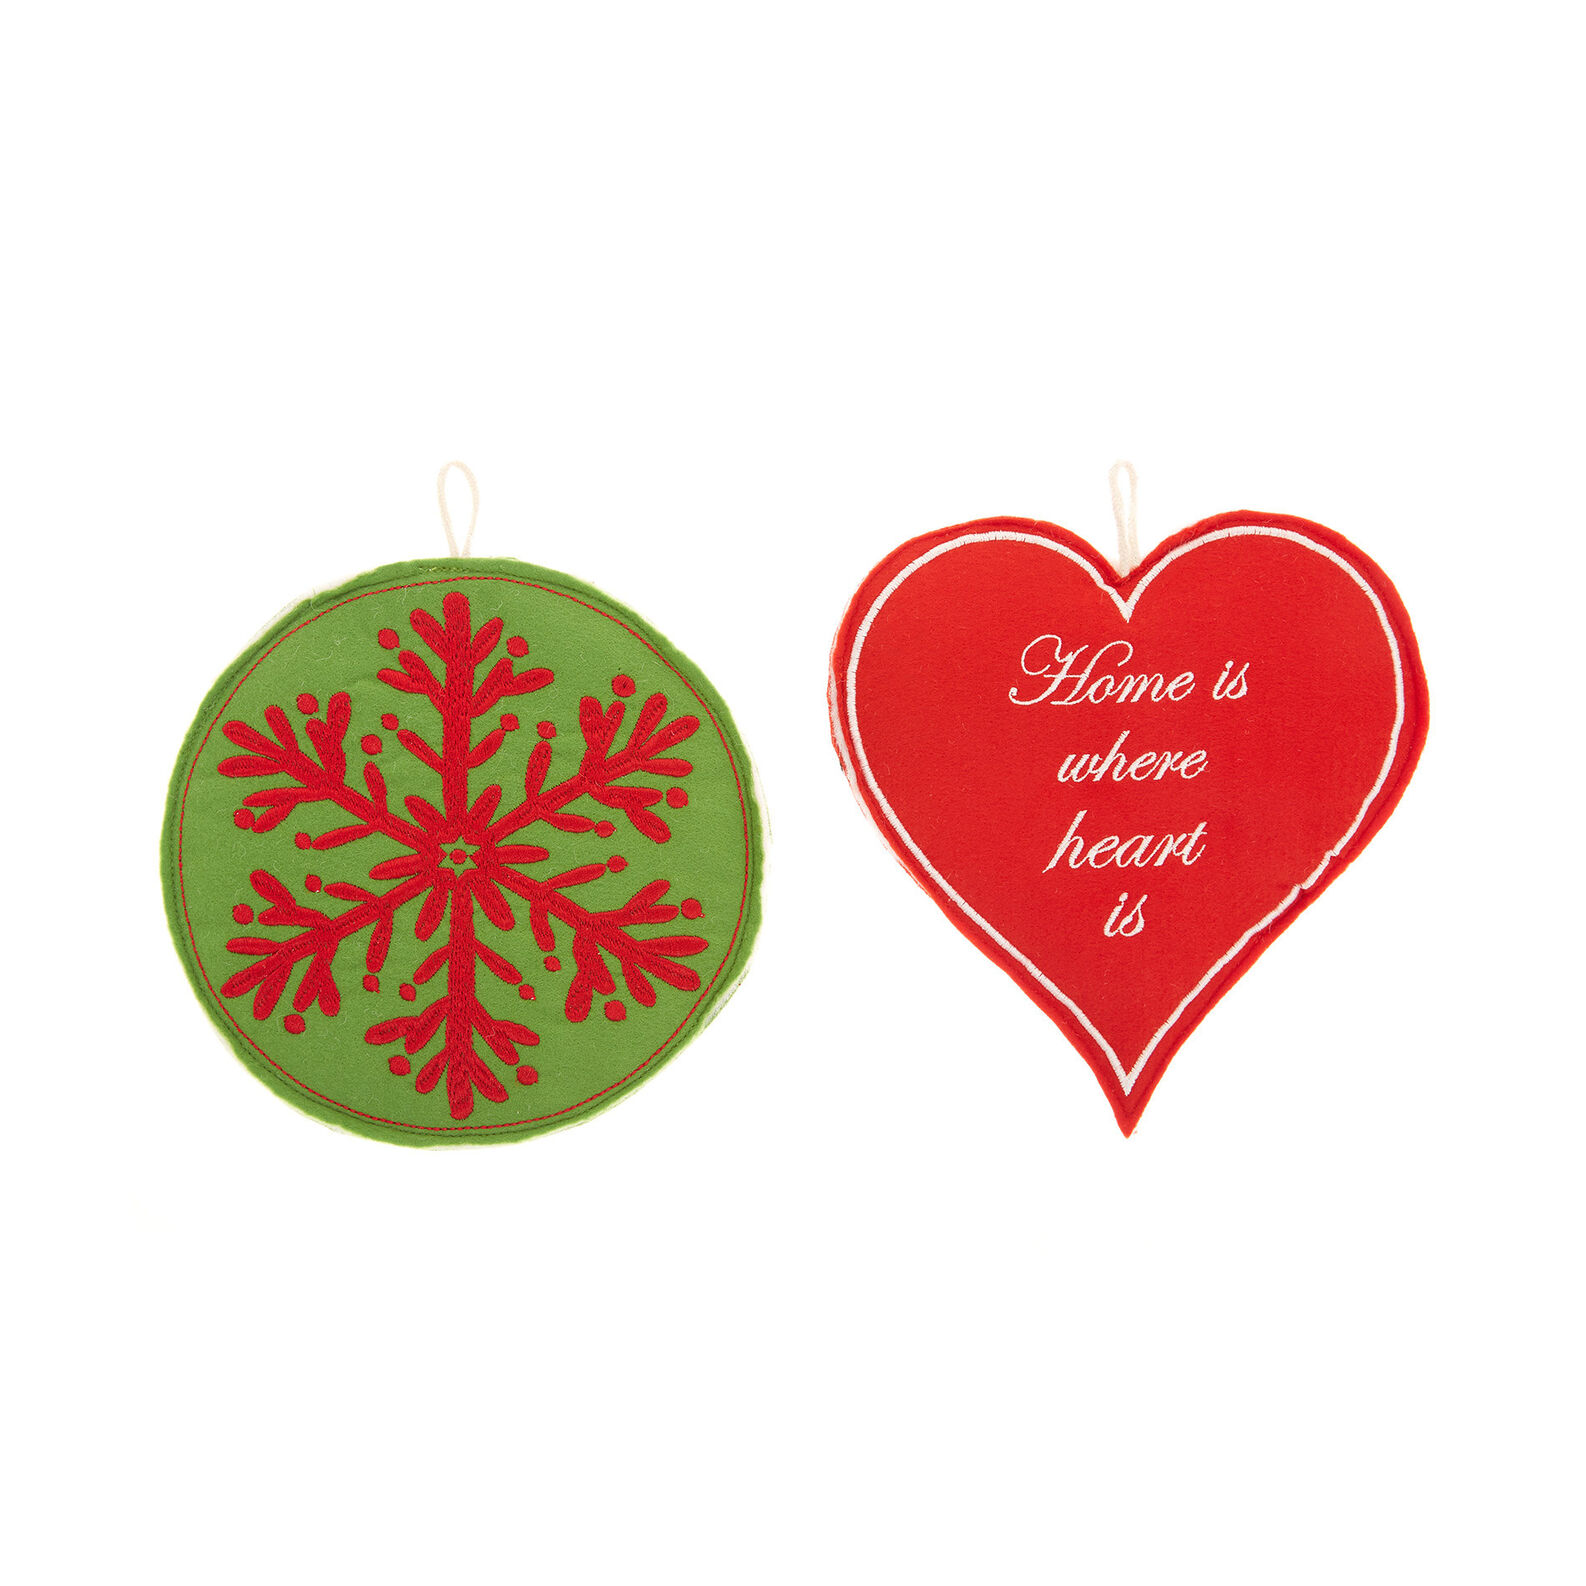 Set of 2 heart and snowflakes decorations in felt